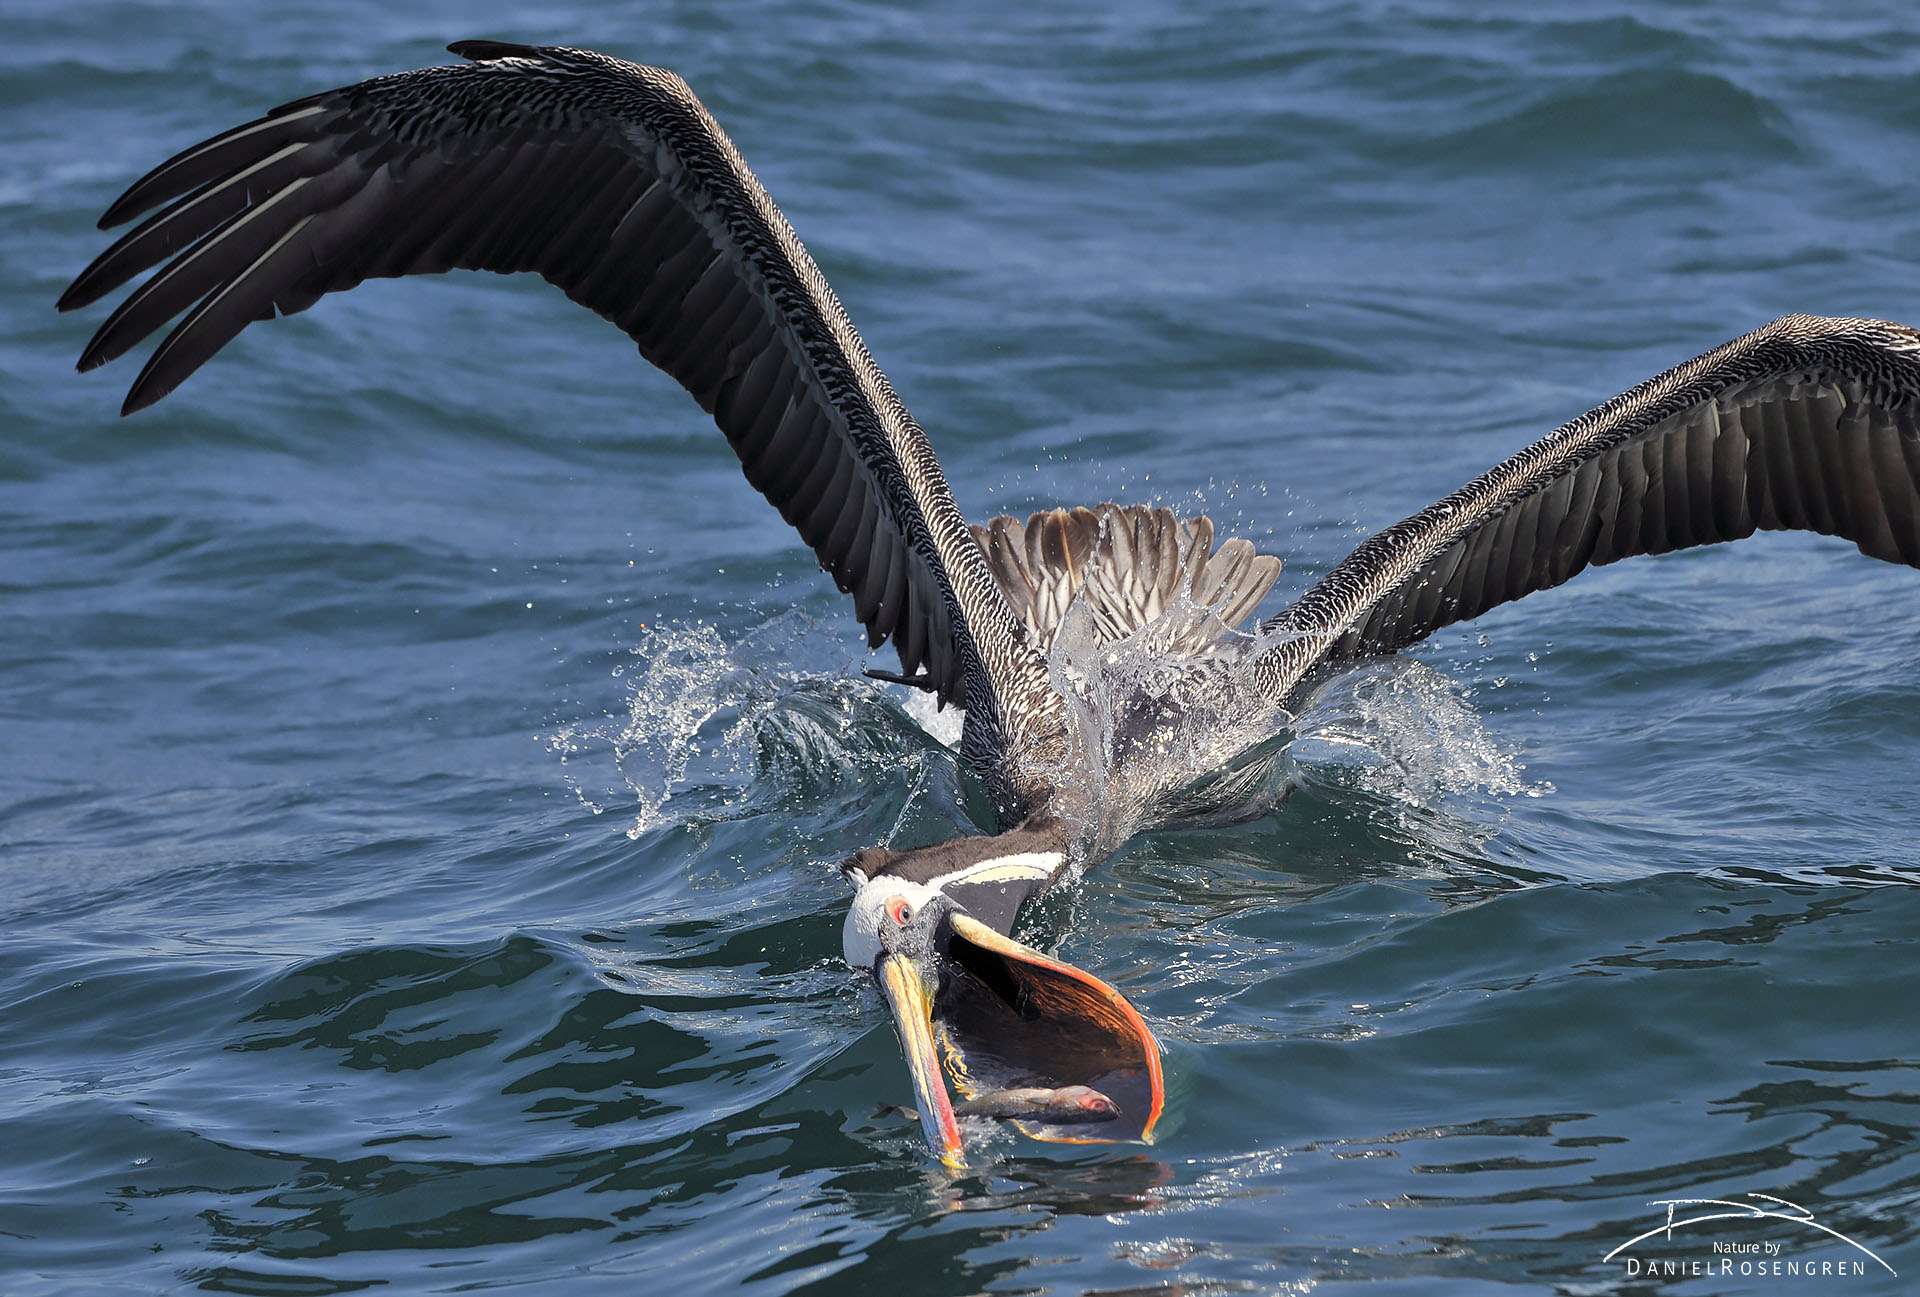 A Peruvian pelican scooping a fish with its massive beak. © Daniel Rosengren